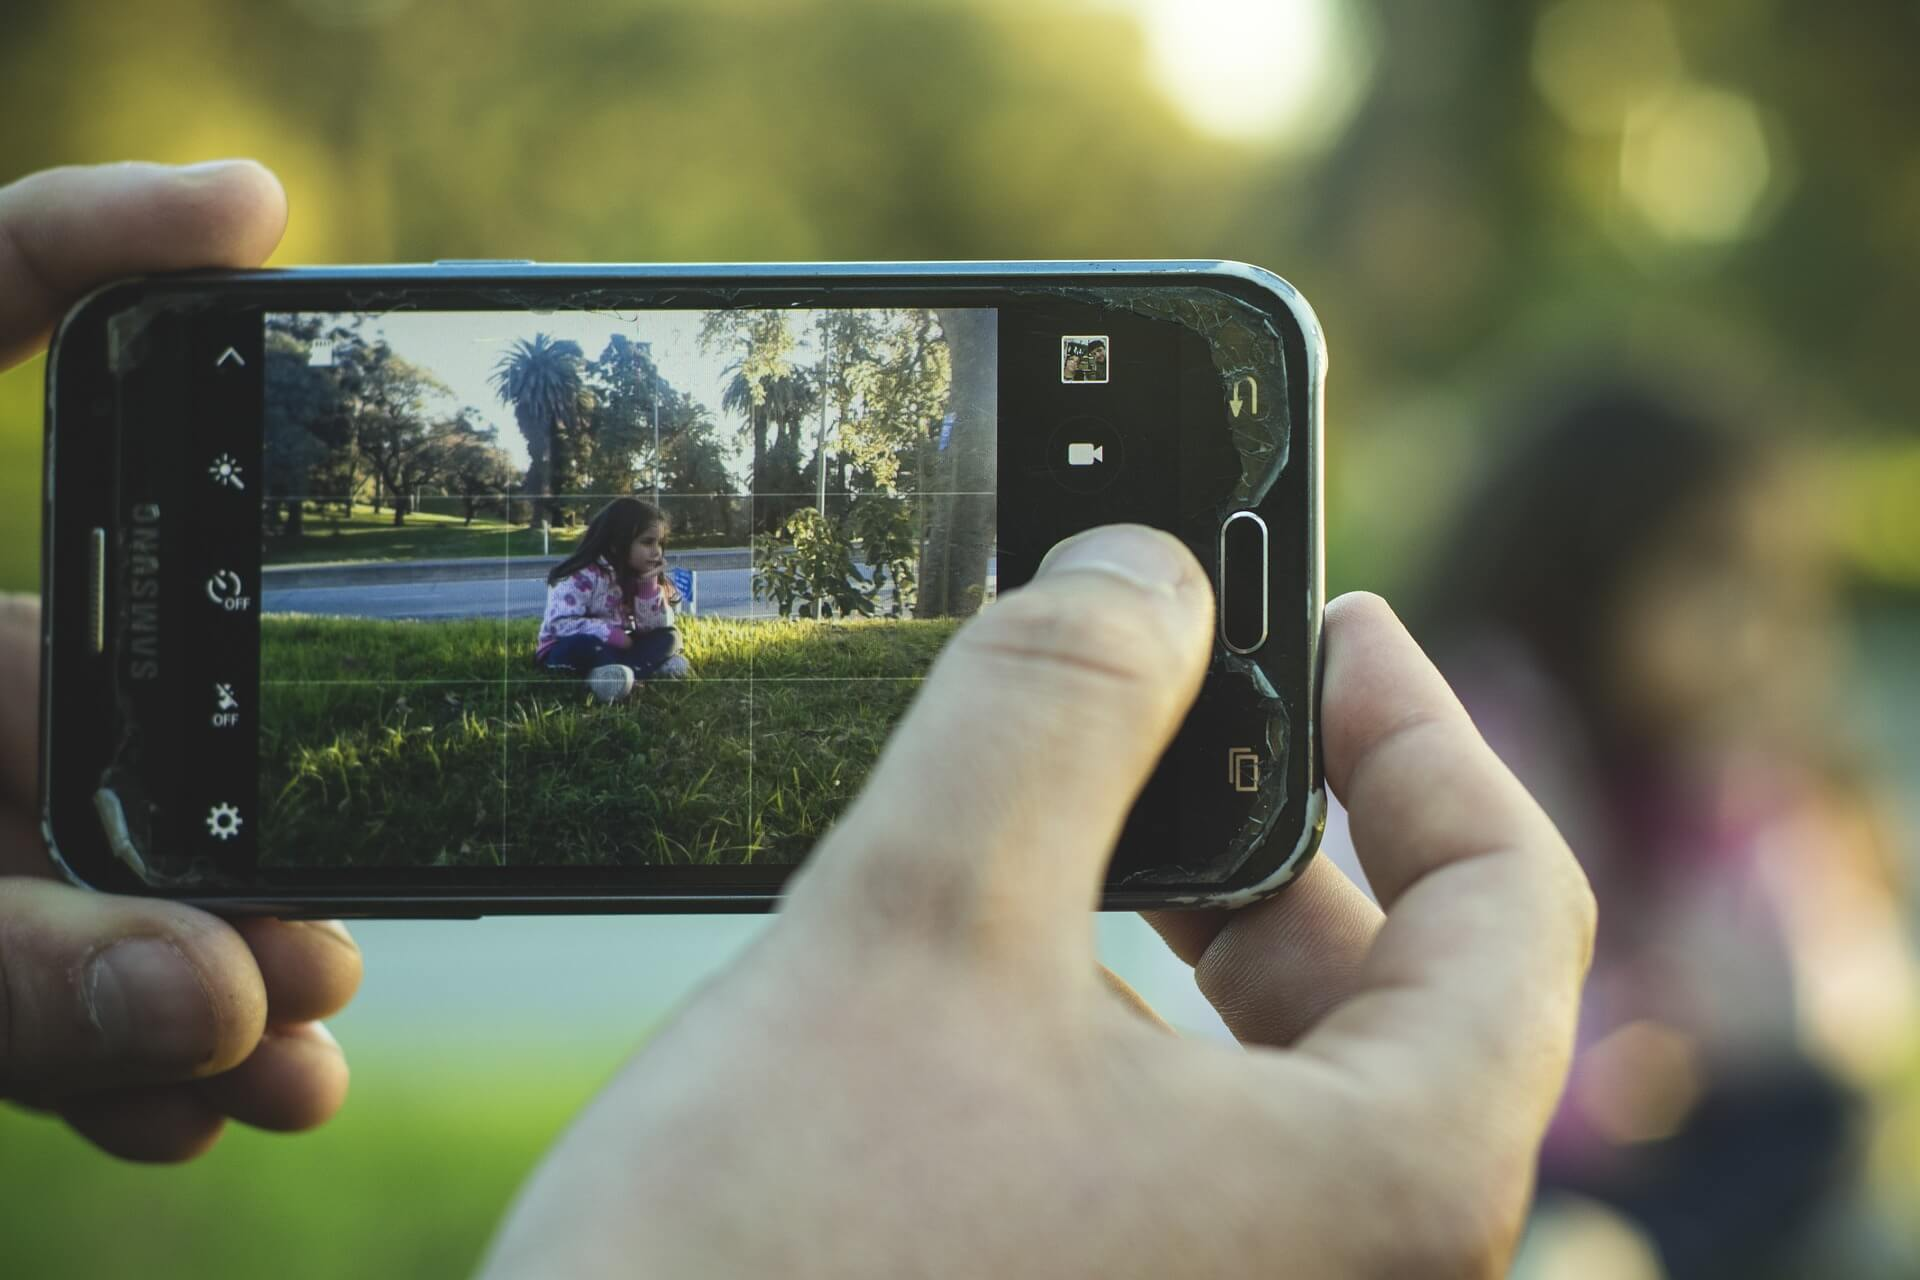 A person holding a phone and taking photo of their kid in the park